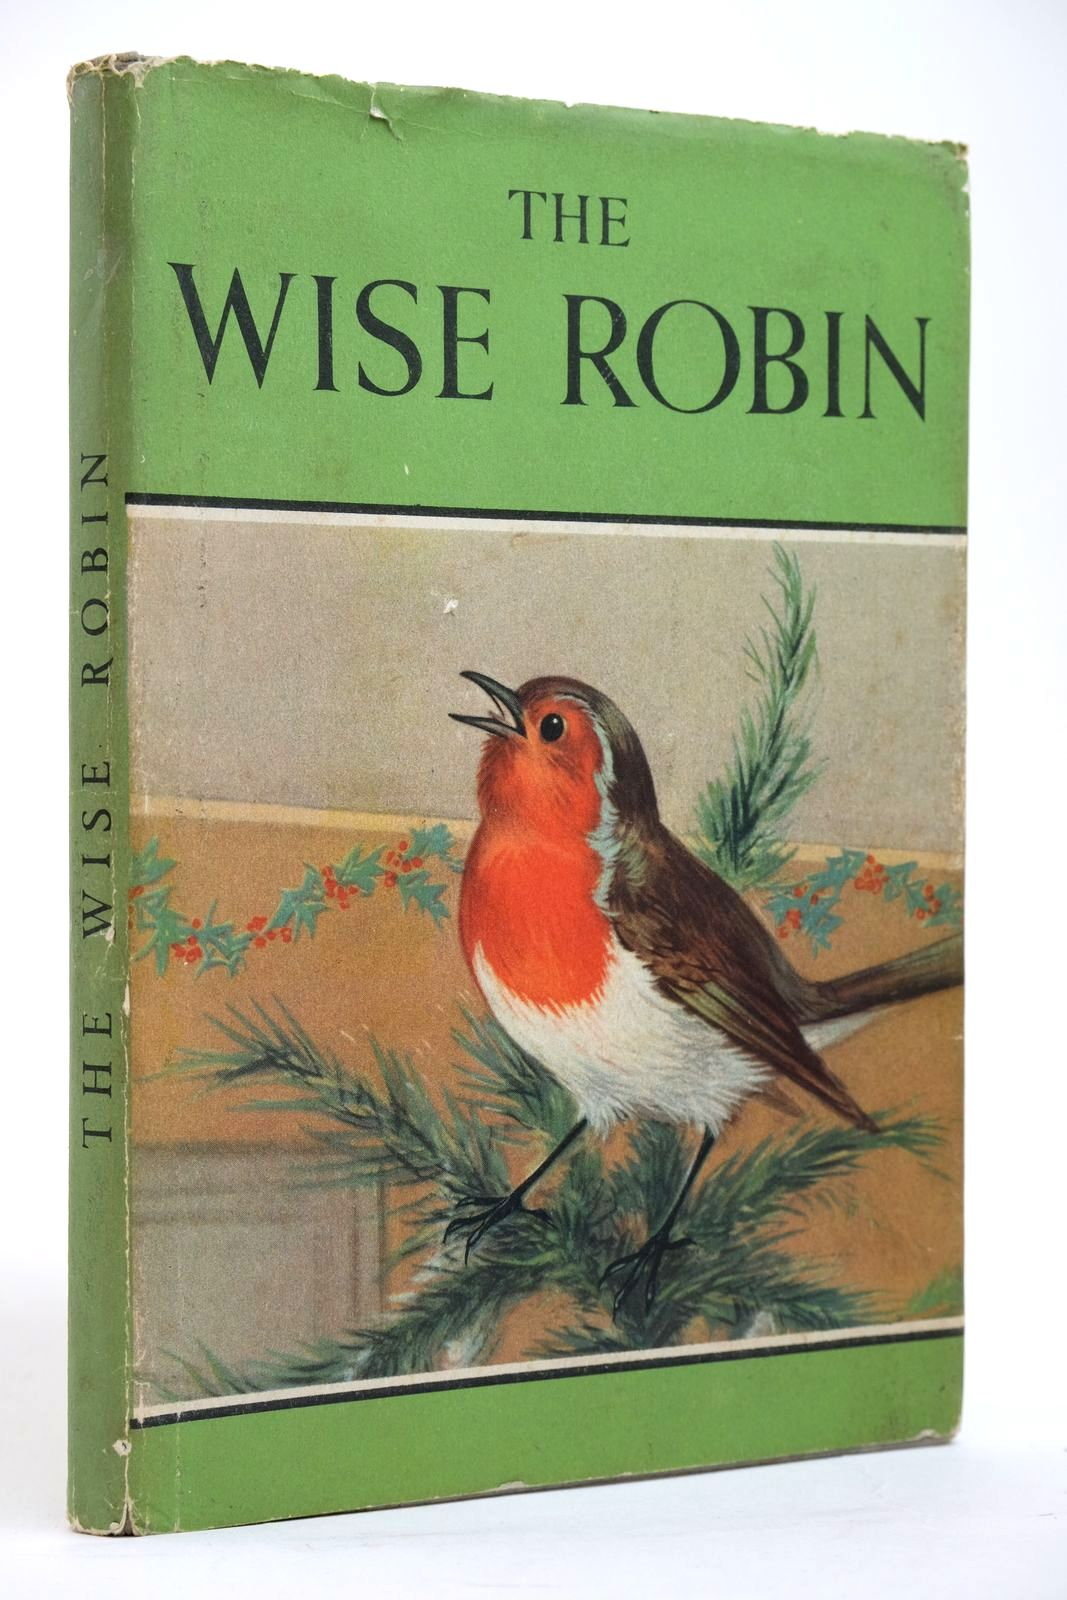 Photo of THE WISE ROBIN written by Barr, Noel illustrated by Hickling, P.B. published by Wills & Hepworth Ltd. (STOCK CODE: 2135159)  for sale by Stella & Rose's Books